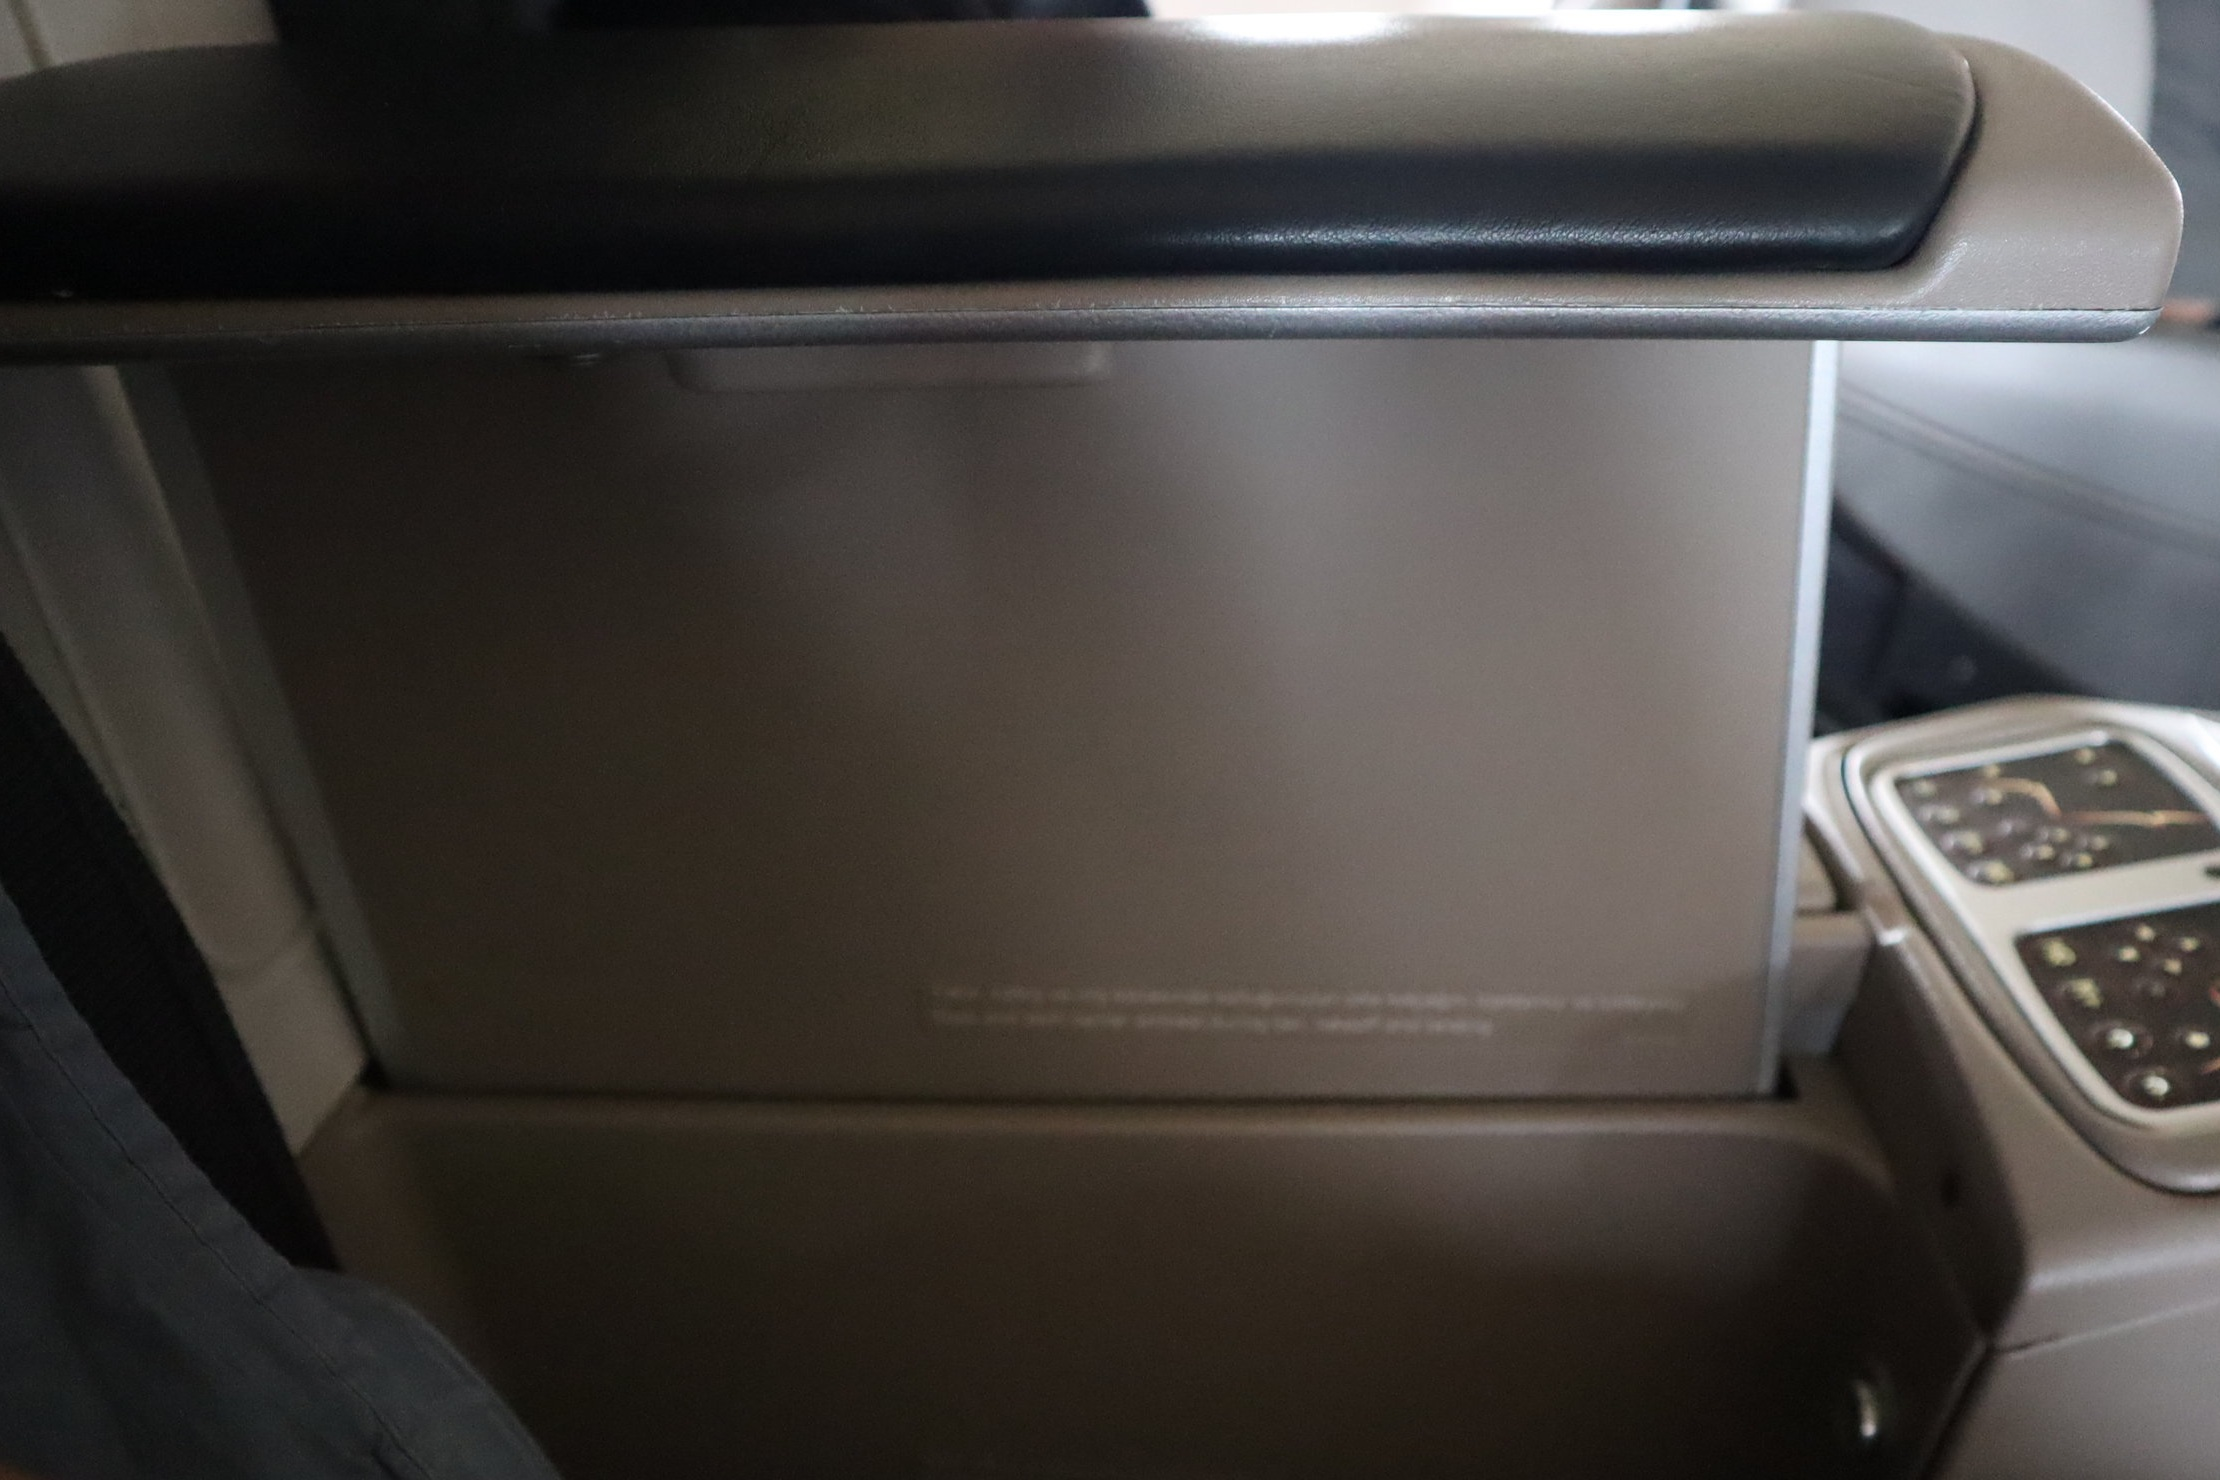 Turkish Airlines A330 business class – Raised armrest